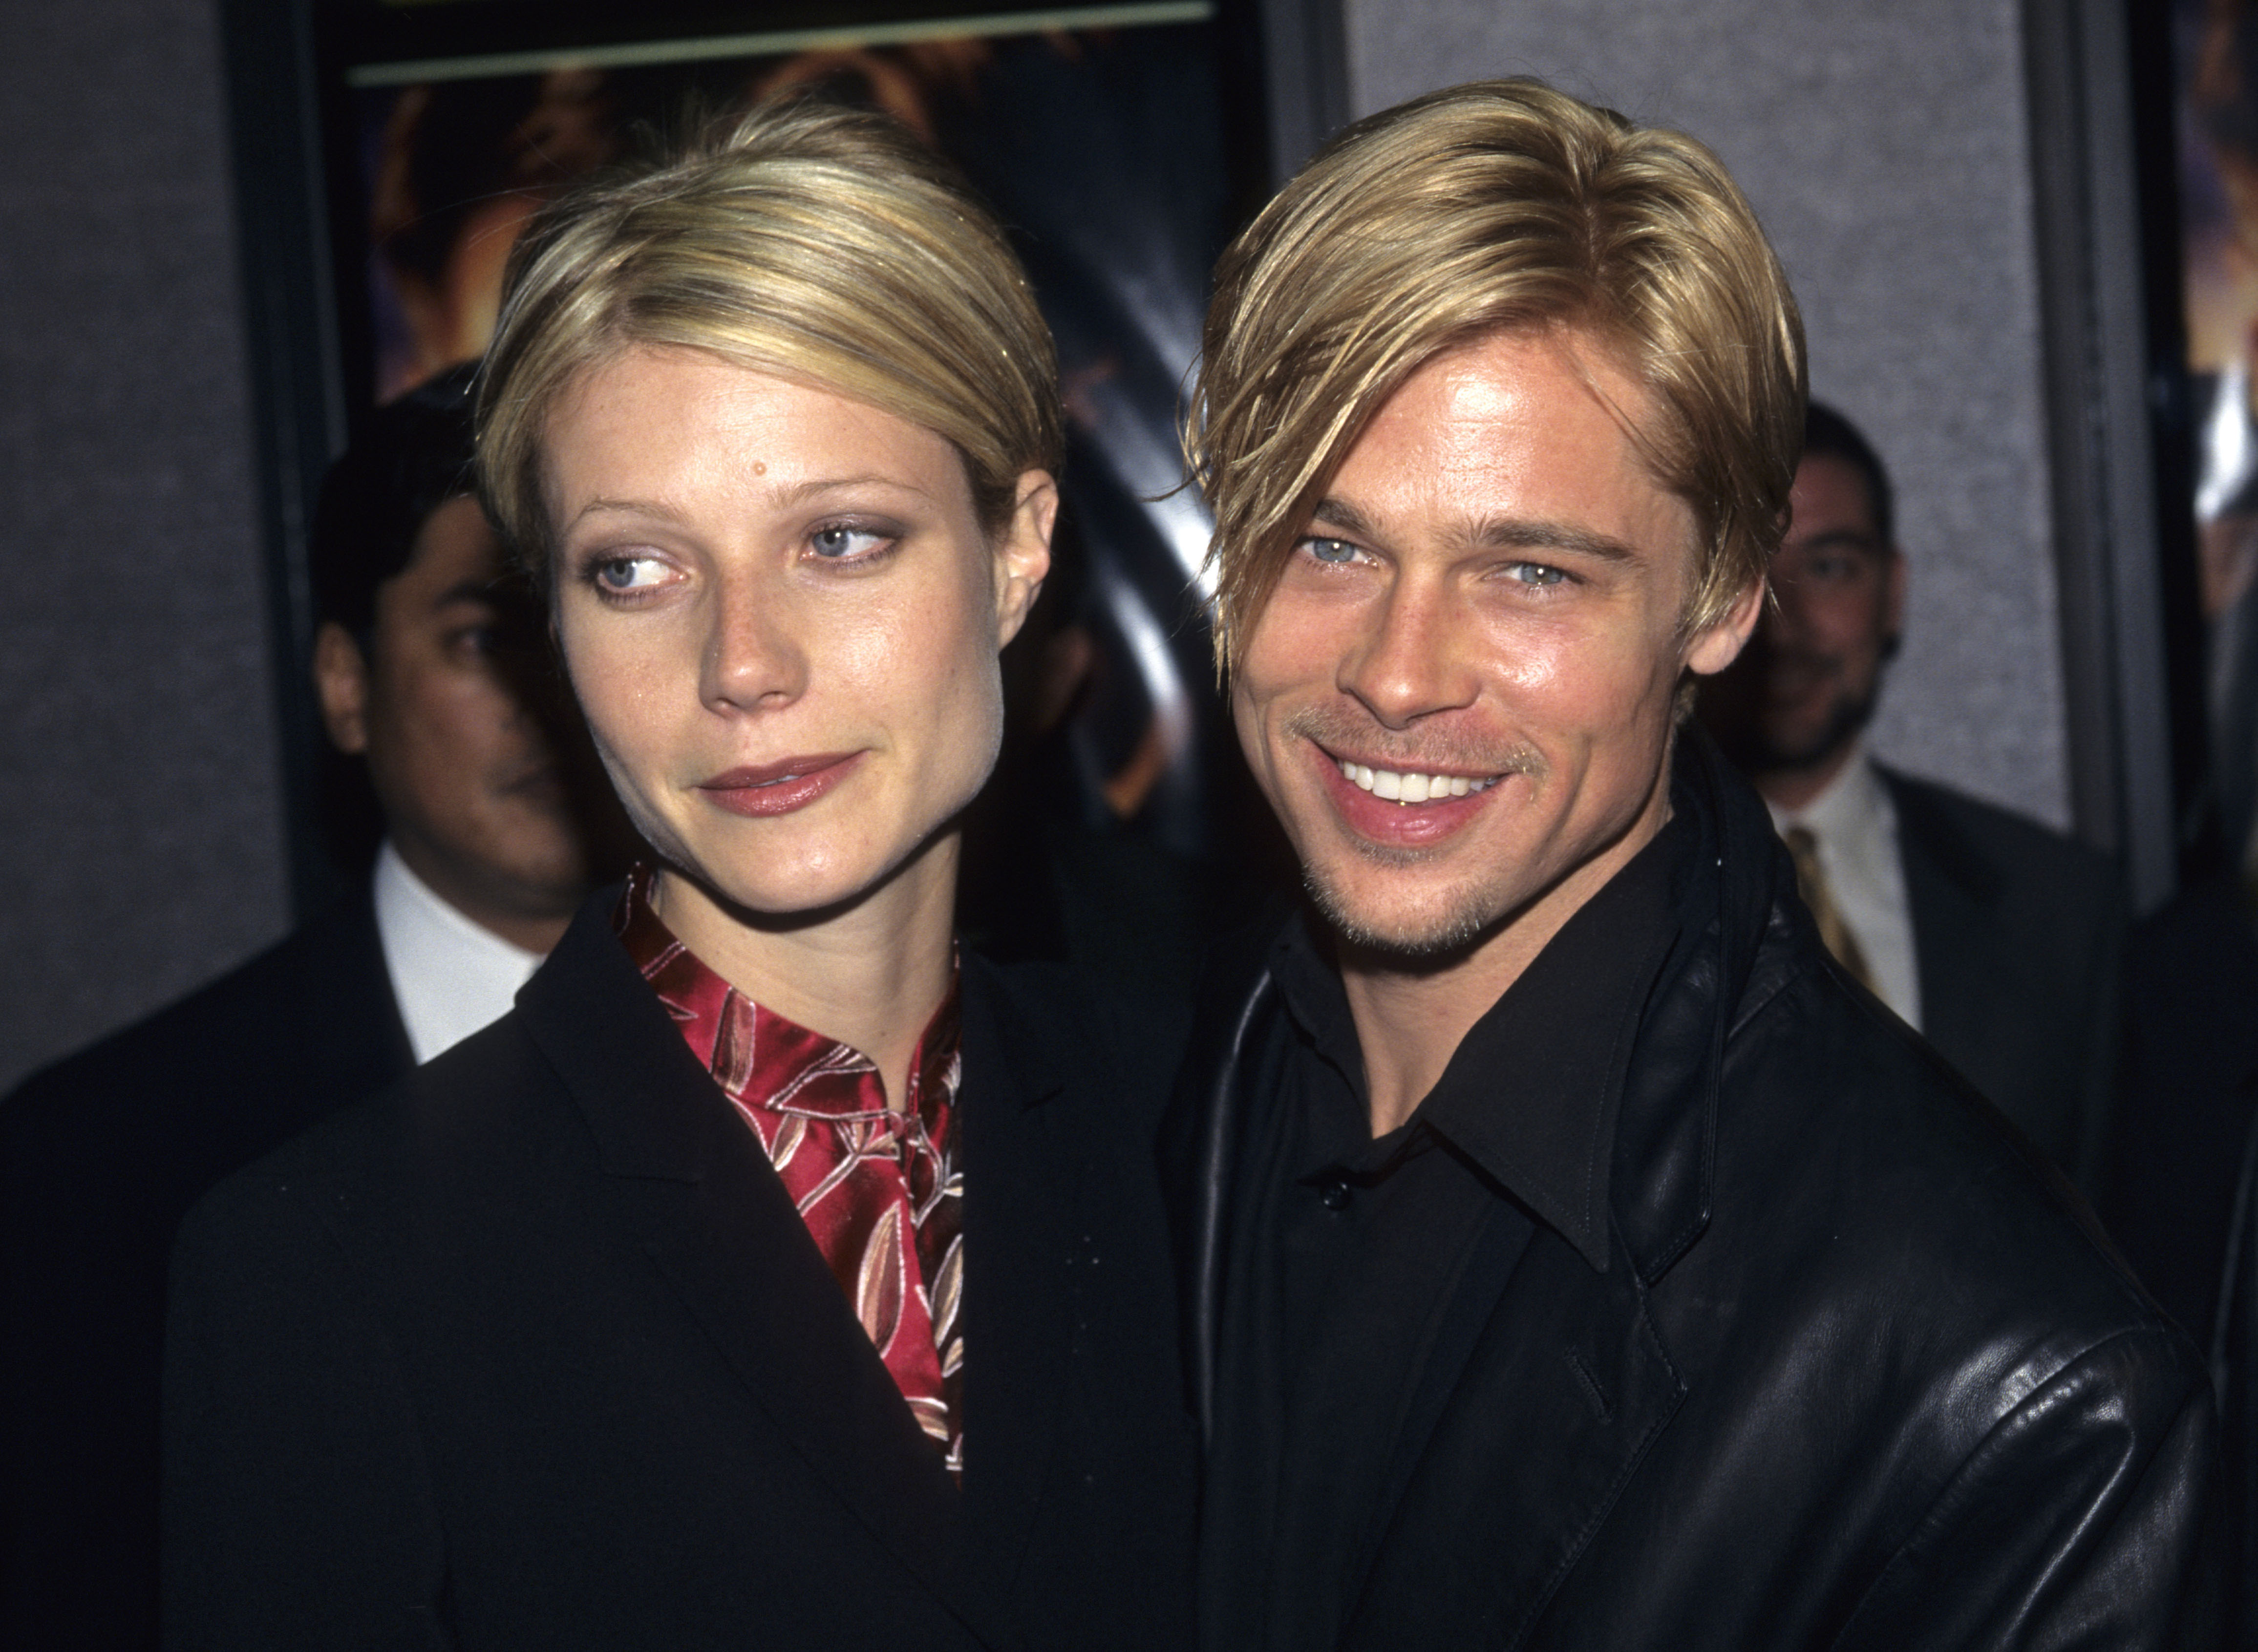 Gwyneth Paltrow Admits She Had a 'Hard Time' Moving on From Her Past 'Terrible' Breakup With Brad Pitt